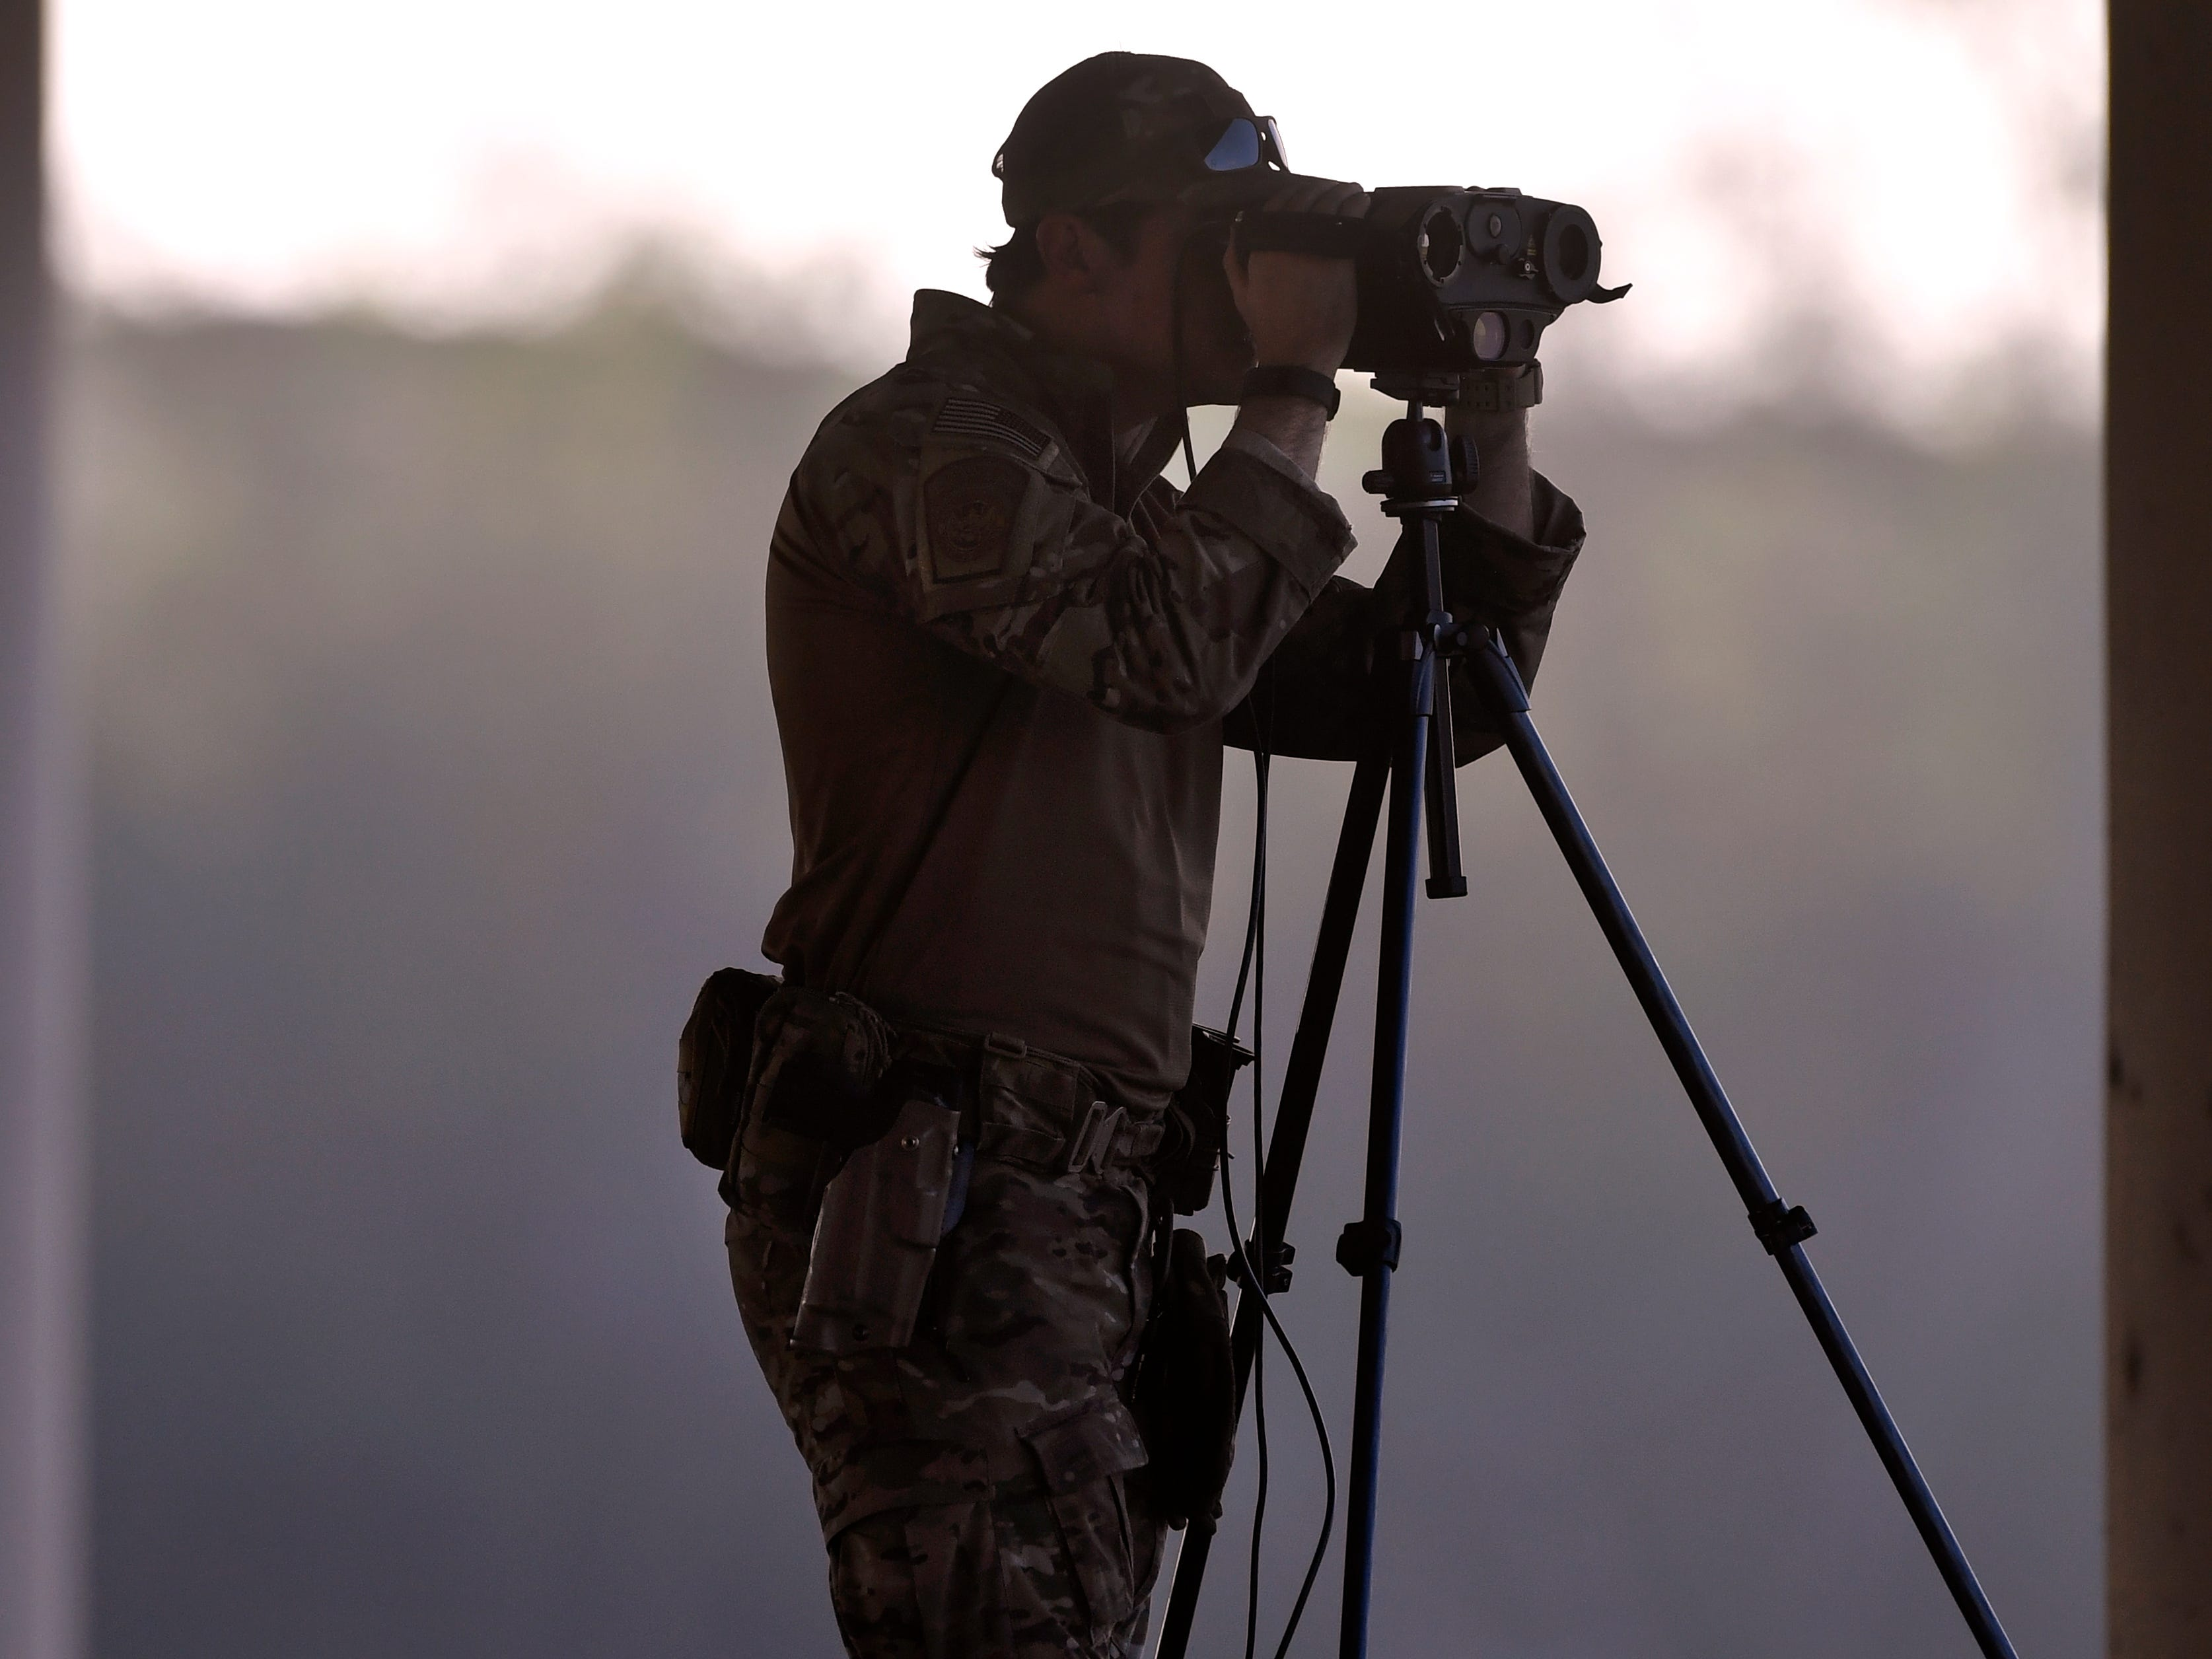 A U.S. Customs and Border Protection agent looks through binoculars while standing atop an armored vehicle beneath the Camino Real International Bridge in Eagle Pass Wednesday Feb. 6, 2019. A caravan of Central American migrants has arrived in Piedras Negras and border law enforcement officials have increased their presence in response.